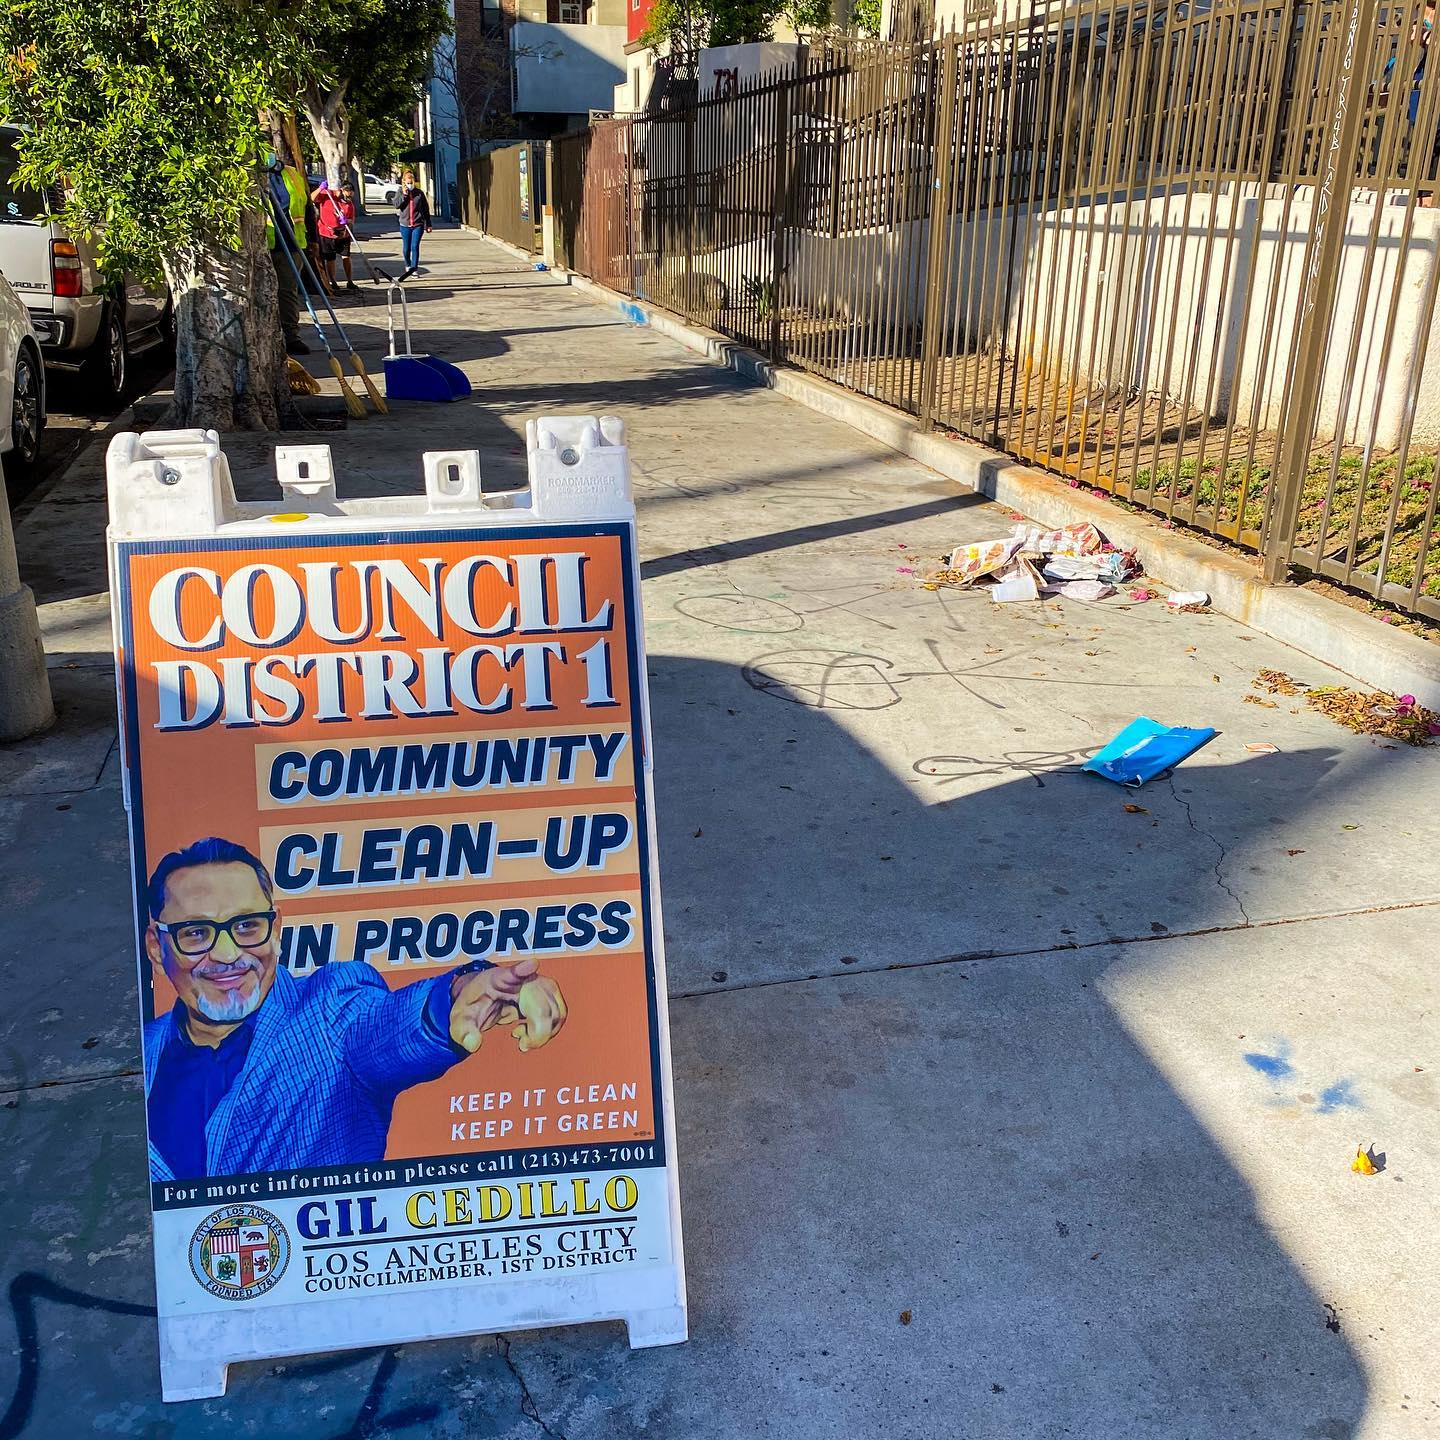 CD1 Community Clean up at the Corner of Beacon St and 8th St in Westlake 4-28-2021 #1